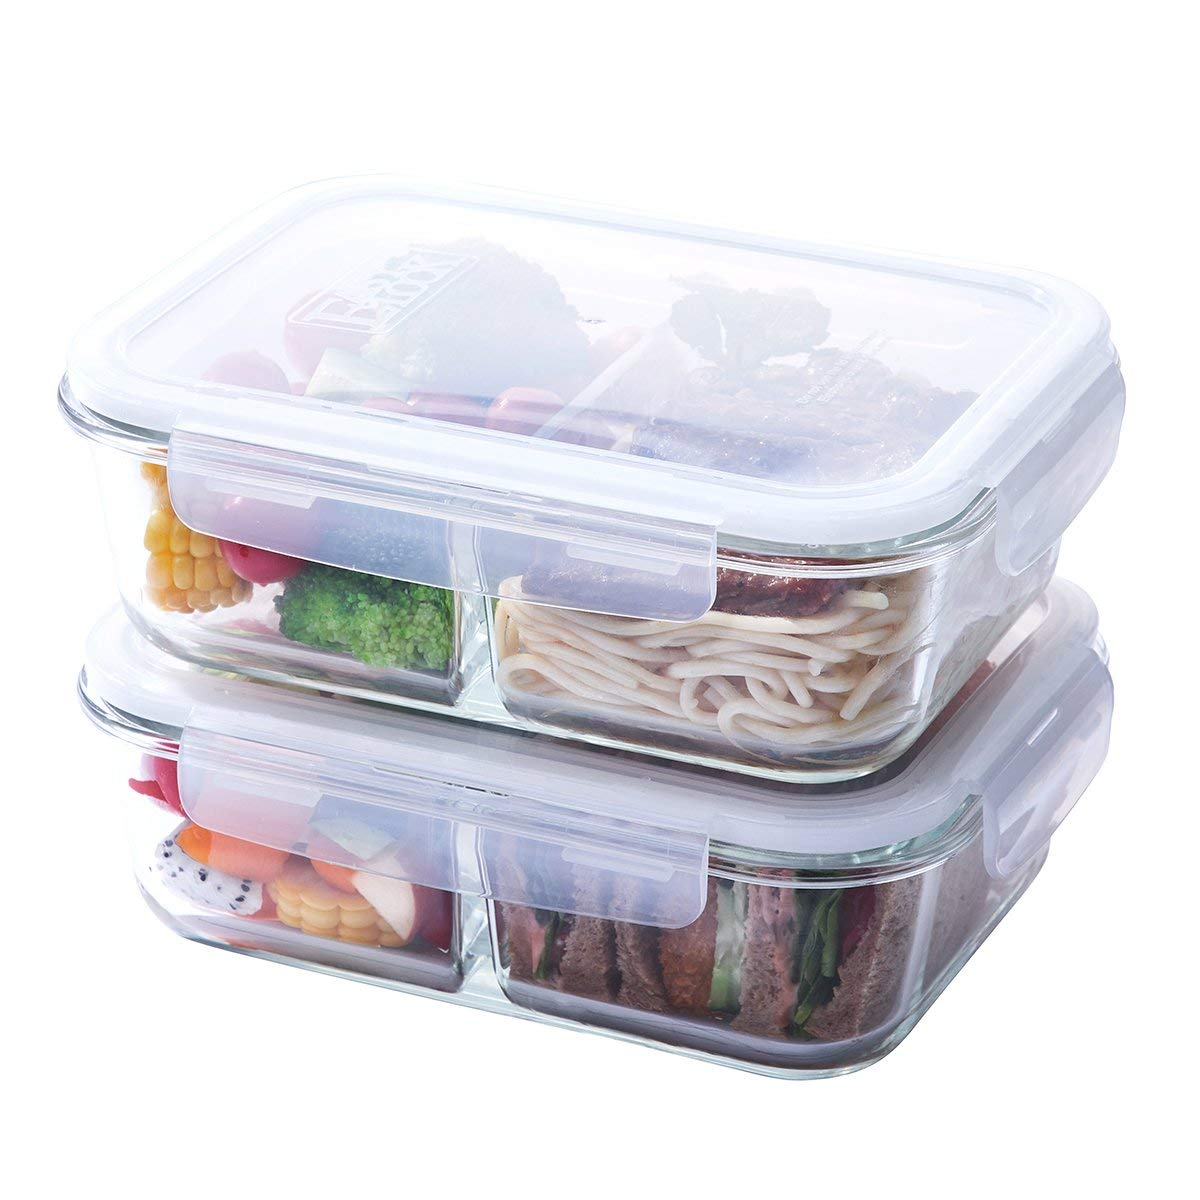 6.43-Cup Glass Meal Prep Containers 2 Compartment, Glass Food Storage Container Set with Airtight Locking Lids(51.4oz, 2-Pack), Portion Control, Microwave, Freezer, Oven, Dishwasher Safe